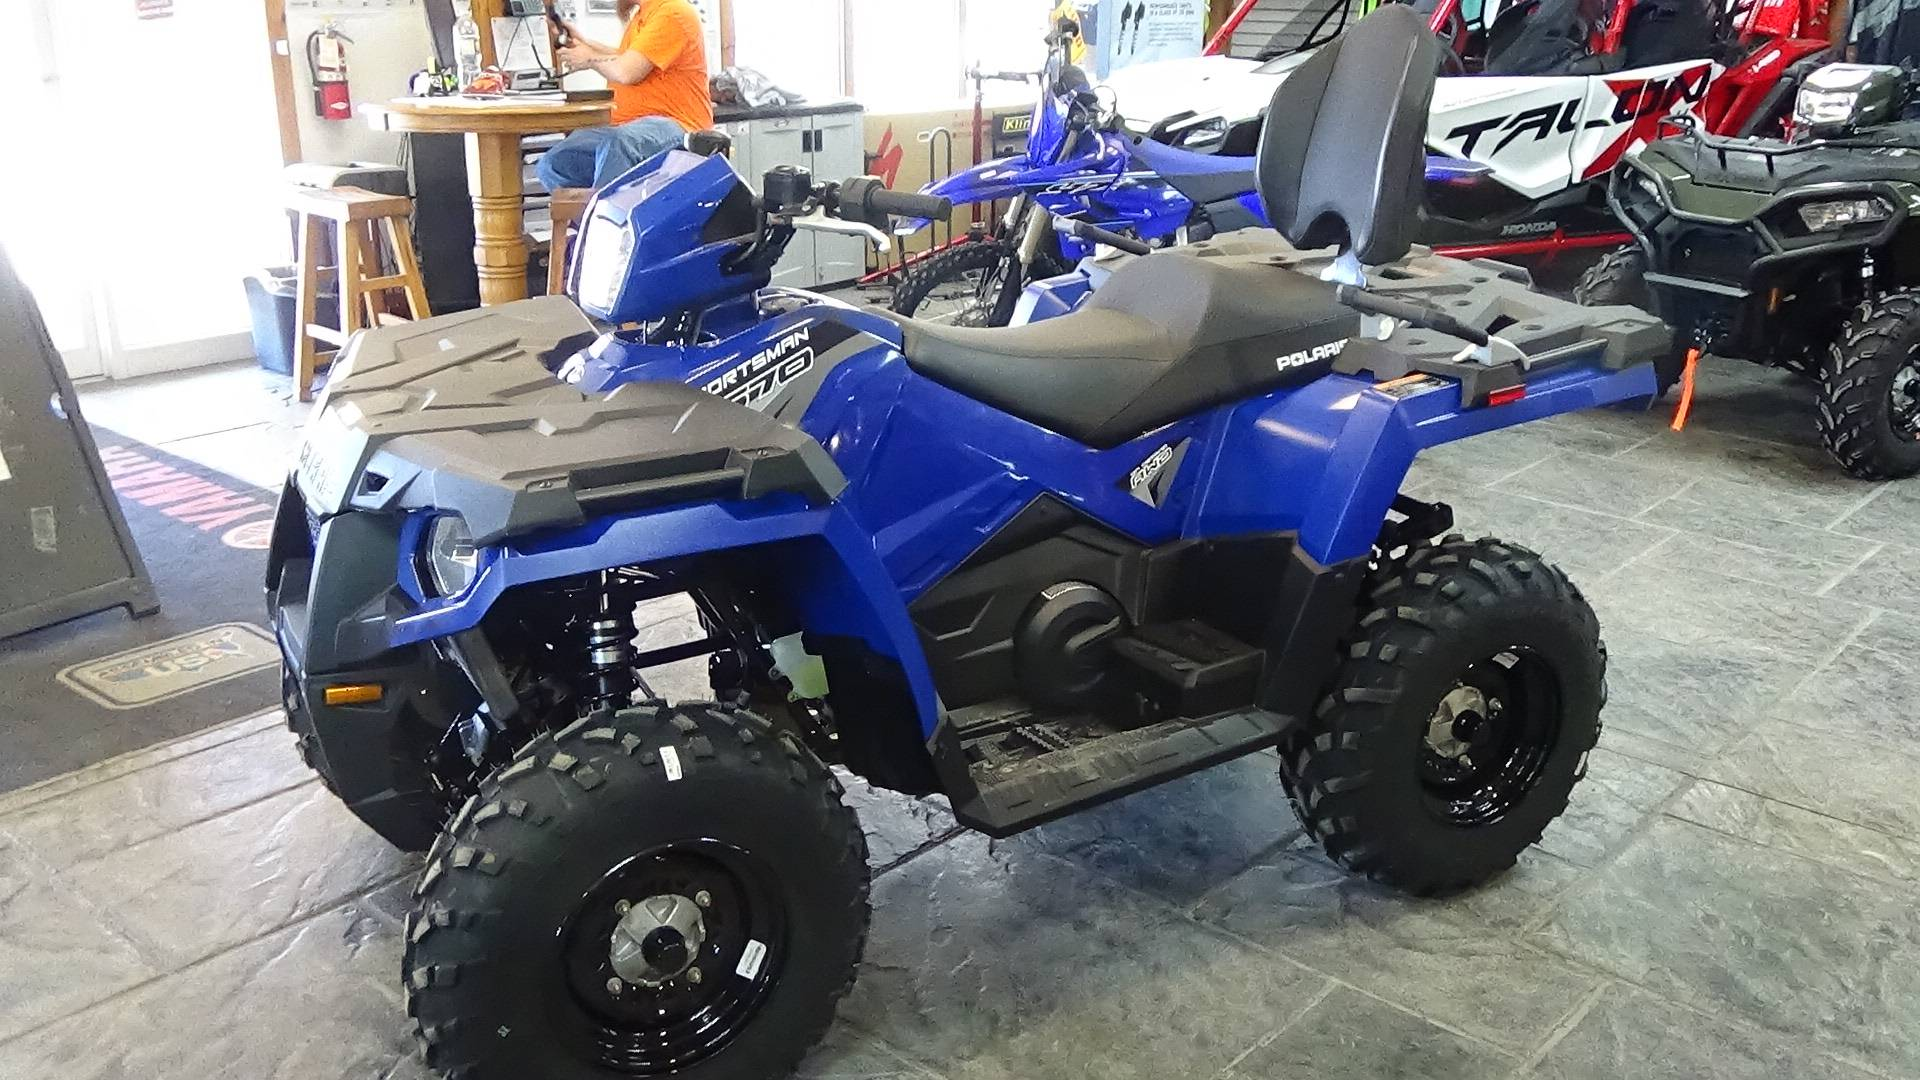 2021 Polaris Sportsman Touring 570 in Bennington, Vermont - Photo 6